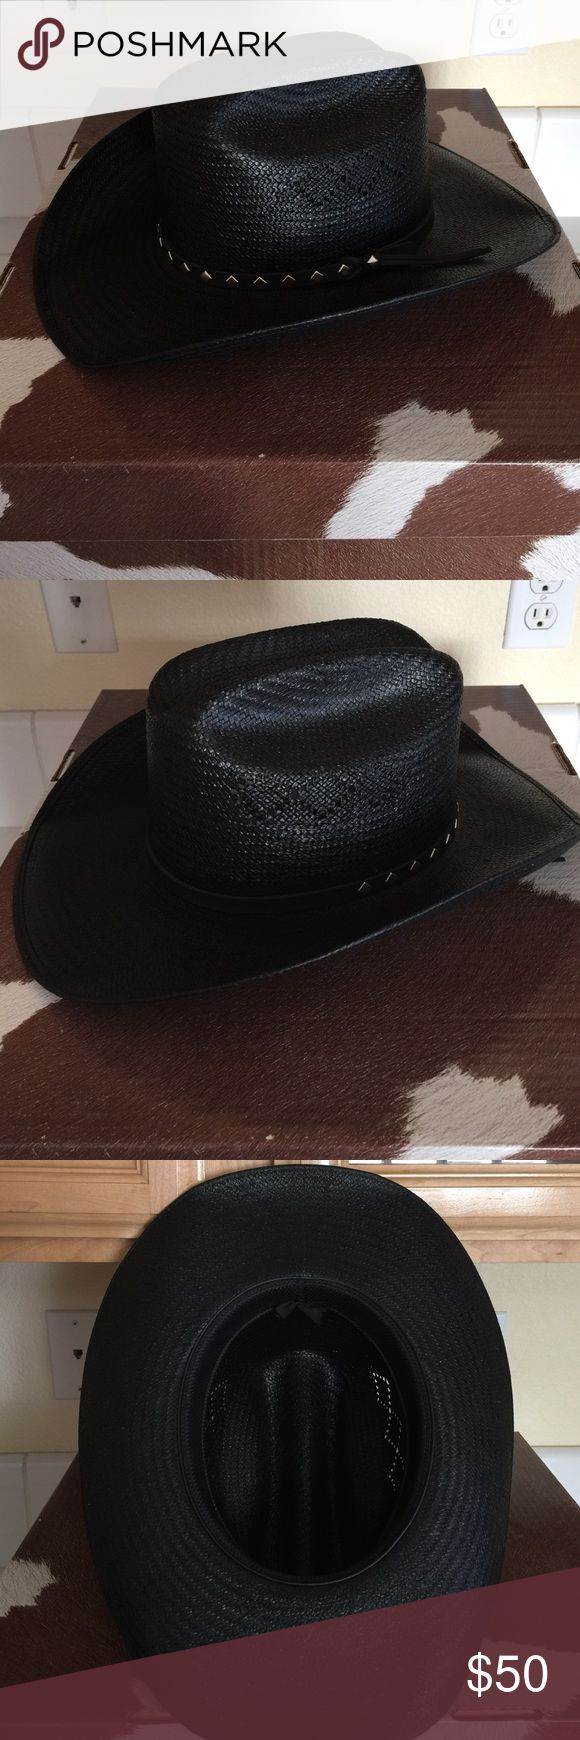 Resistol cowboy hat. Resistol brand black cowboy hat. Molded high quality straw had with braided leather band, and silver stud accents. Very good pre owned condition. Comes with brand box, with molded hat rest. Resistol Accessories Hats